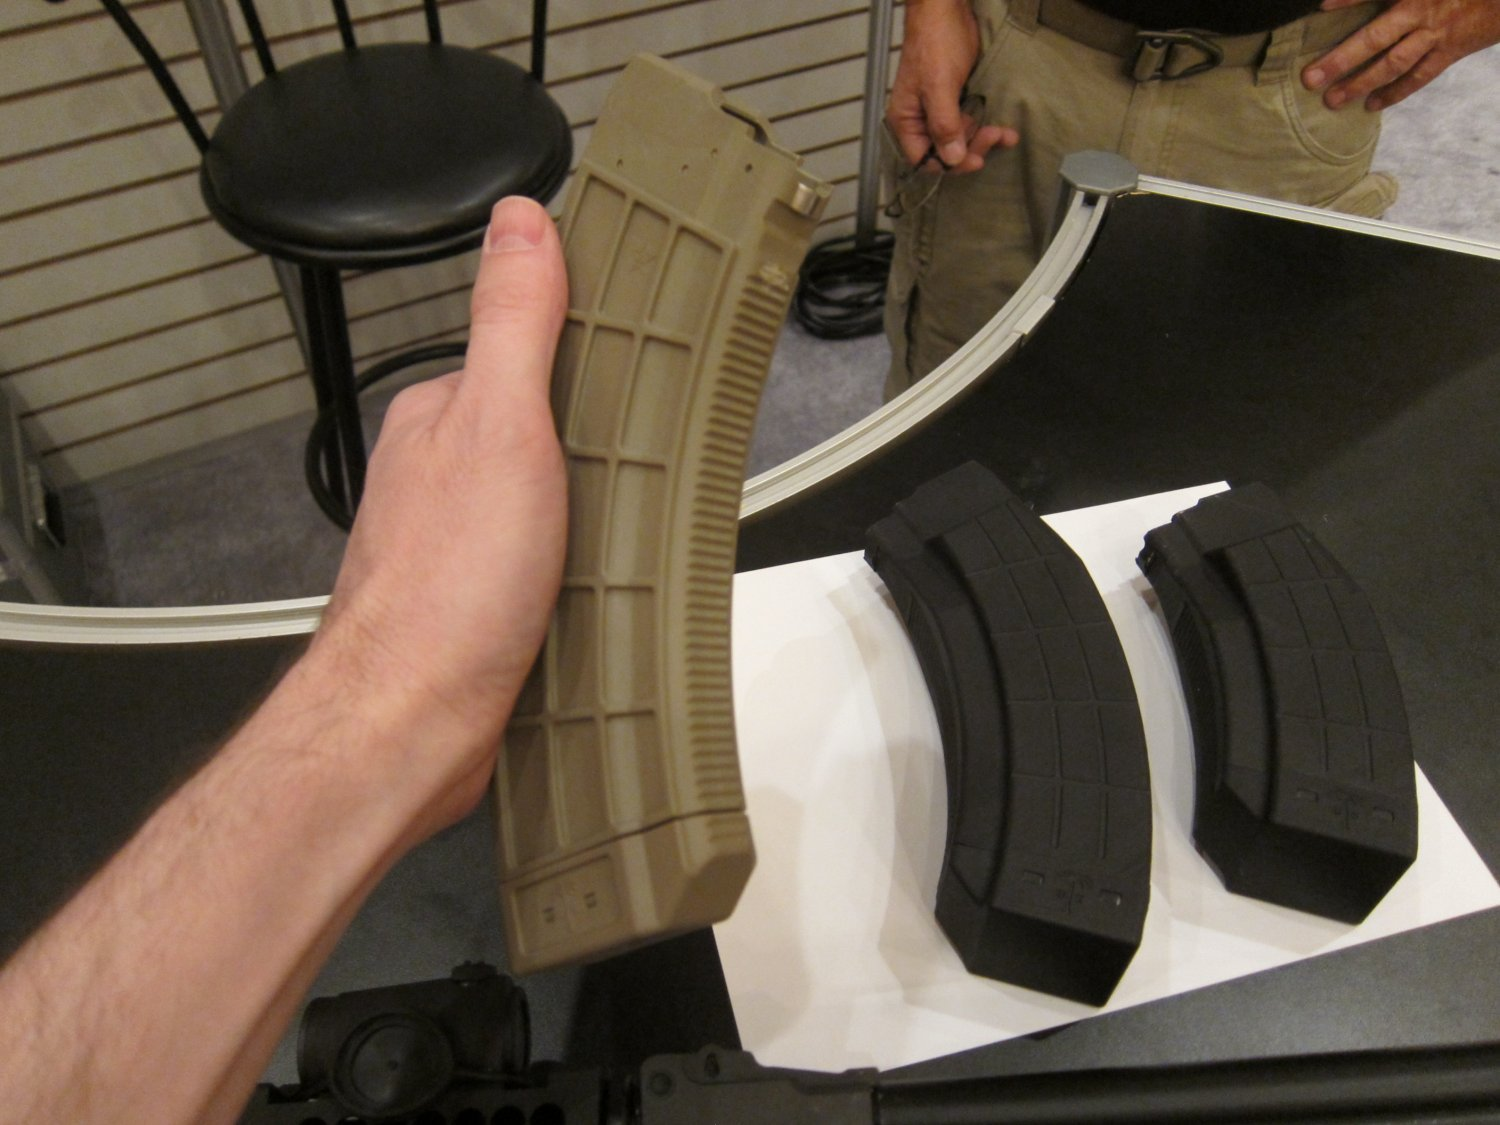 US PALM  Qaud Stack 4x2 45 Round and 30 Round AK Mags AK 47 AKM Rifle Magazines TangoDown SHOT Show 2012 DefenseReview.com DR 4 US PALM 45 Round and 30 Round Quad Stack (4x2 config) 7.62x39mm Russian Caliber Polymer AK Mags (Rifle Magazines) at SHOT Show 2012: The Kalashnikov AK 47/AKM Rifle Gets a Big Boost in Immediate Ammo Capacity/Tactical Firepower! (Video!)